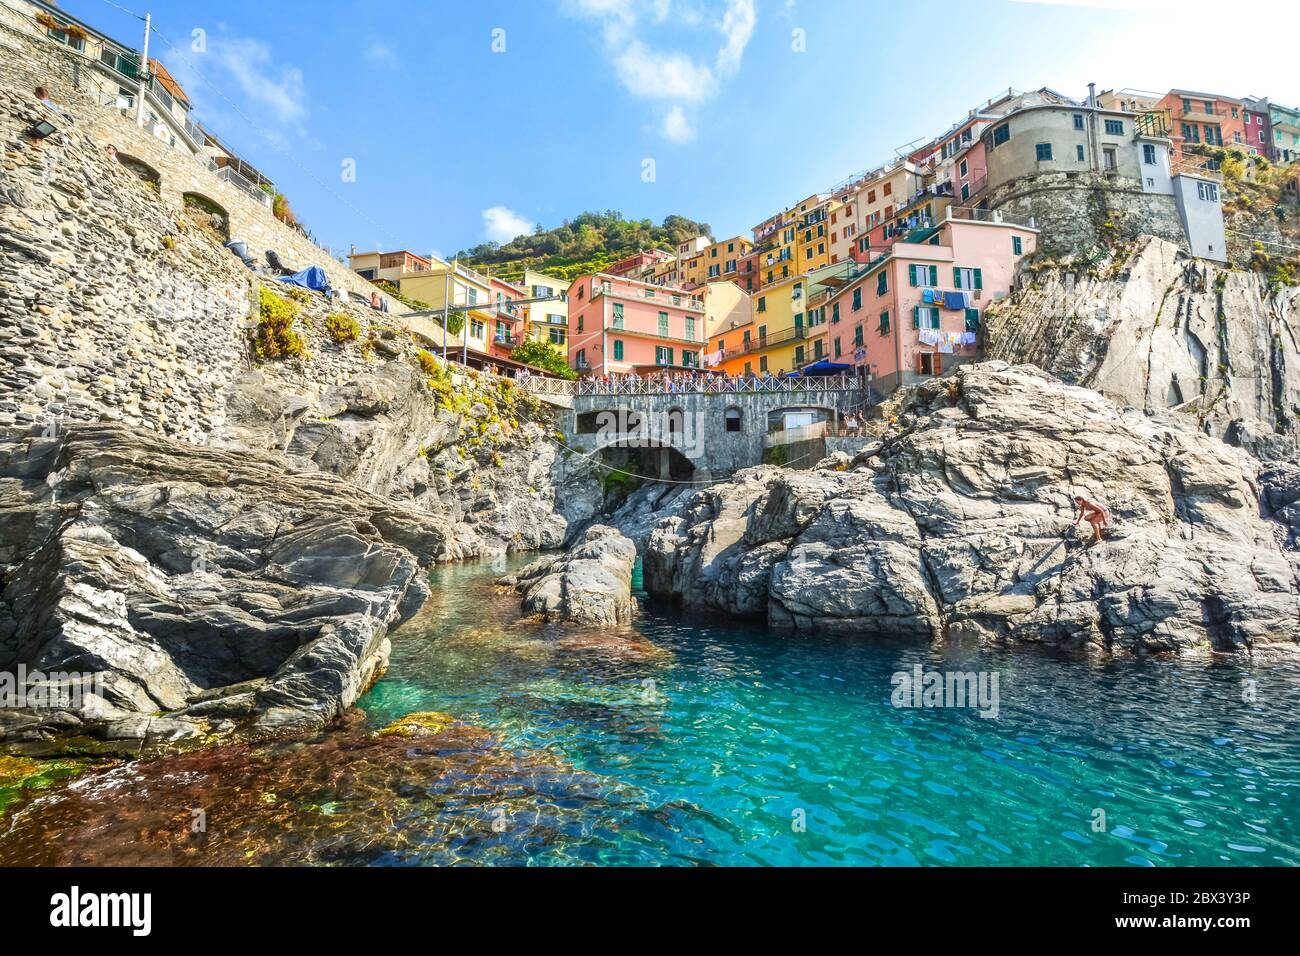 The rocky coastline and swimming bay on the Ligurian Coast of Italy at the village of Manarola, Italy, part of the Cinque Terre, an Unesco site Stock Photo